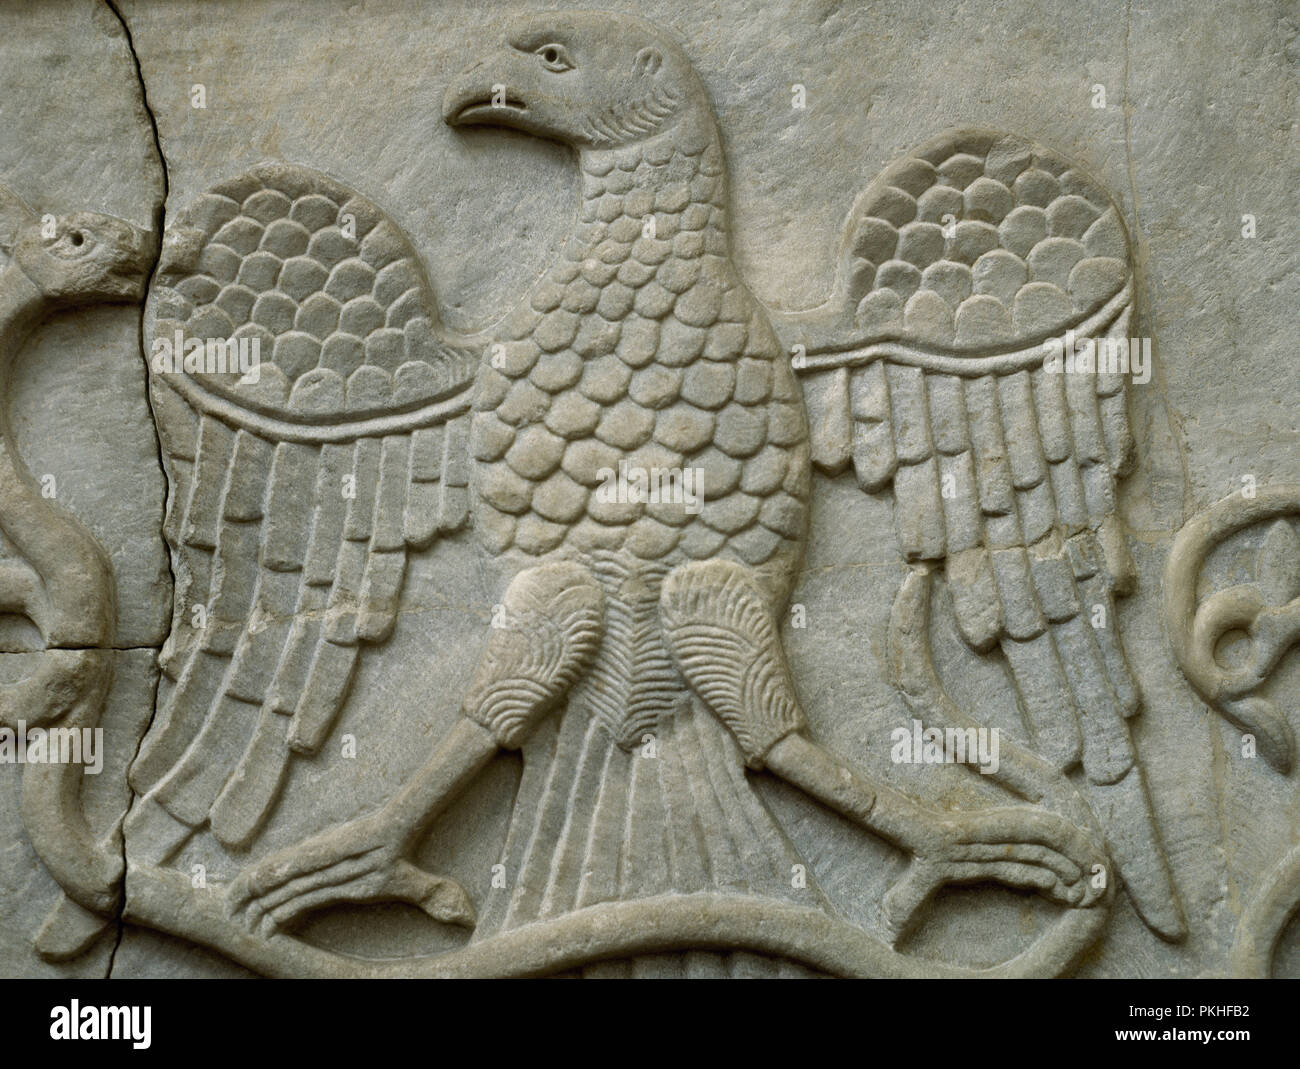 Marble slab. Allegorical reliefe depicting an eagle. Byzantine. 10th-11th century. From Istambul, Turkey. British Museum. London. England. - Stock Image